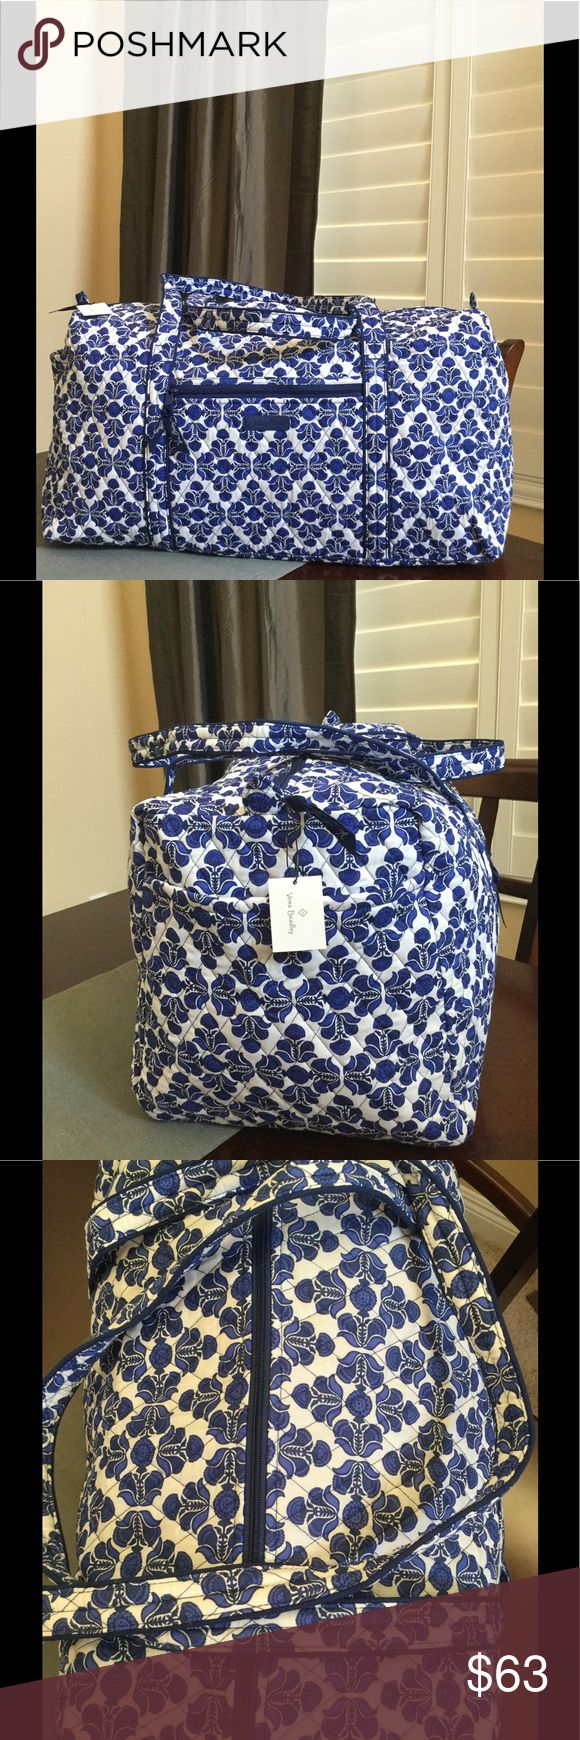 """NWT VERA BRADLEY LARGE DUFFEL Brand new with tags Vera Bradley large duffel  Cobalt tile pattern  15"""" strap drop Handy outside end pocket Folds flat for easy storing Dimensions 22"""" W x 11½"""" H x 11½"""" D - 15"""" strap drop Duffle Smoke/pet free home Vera Bradley Bags Travel Bags"""